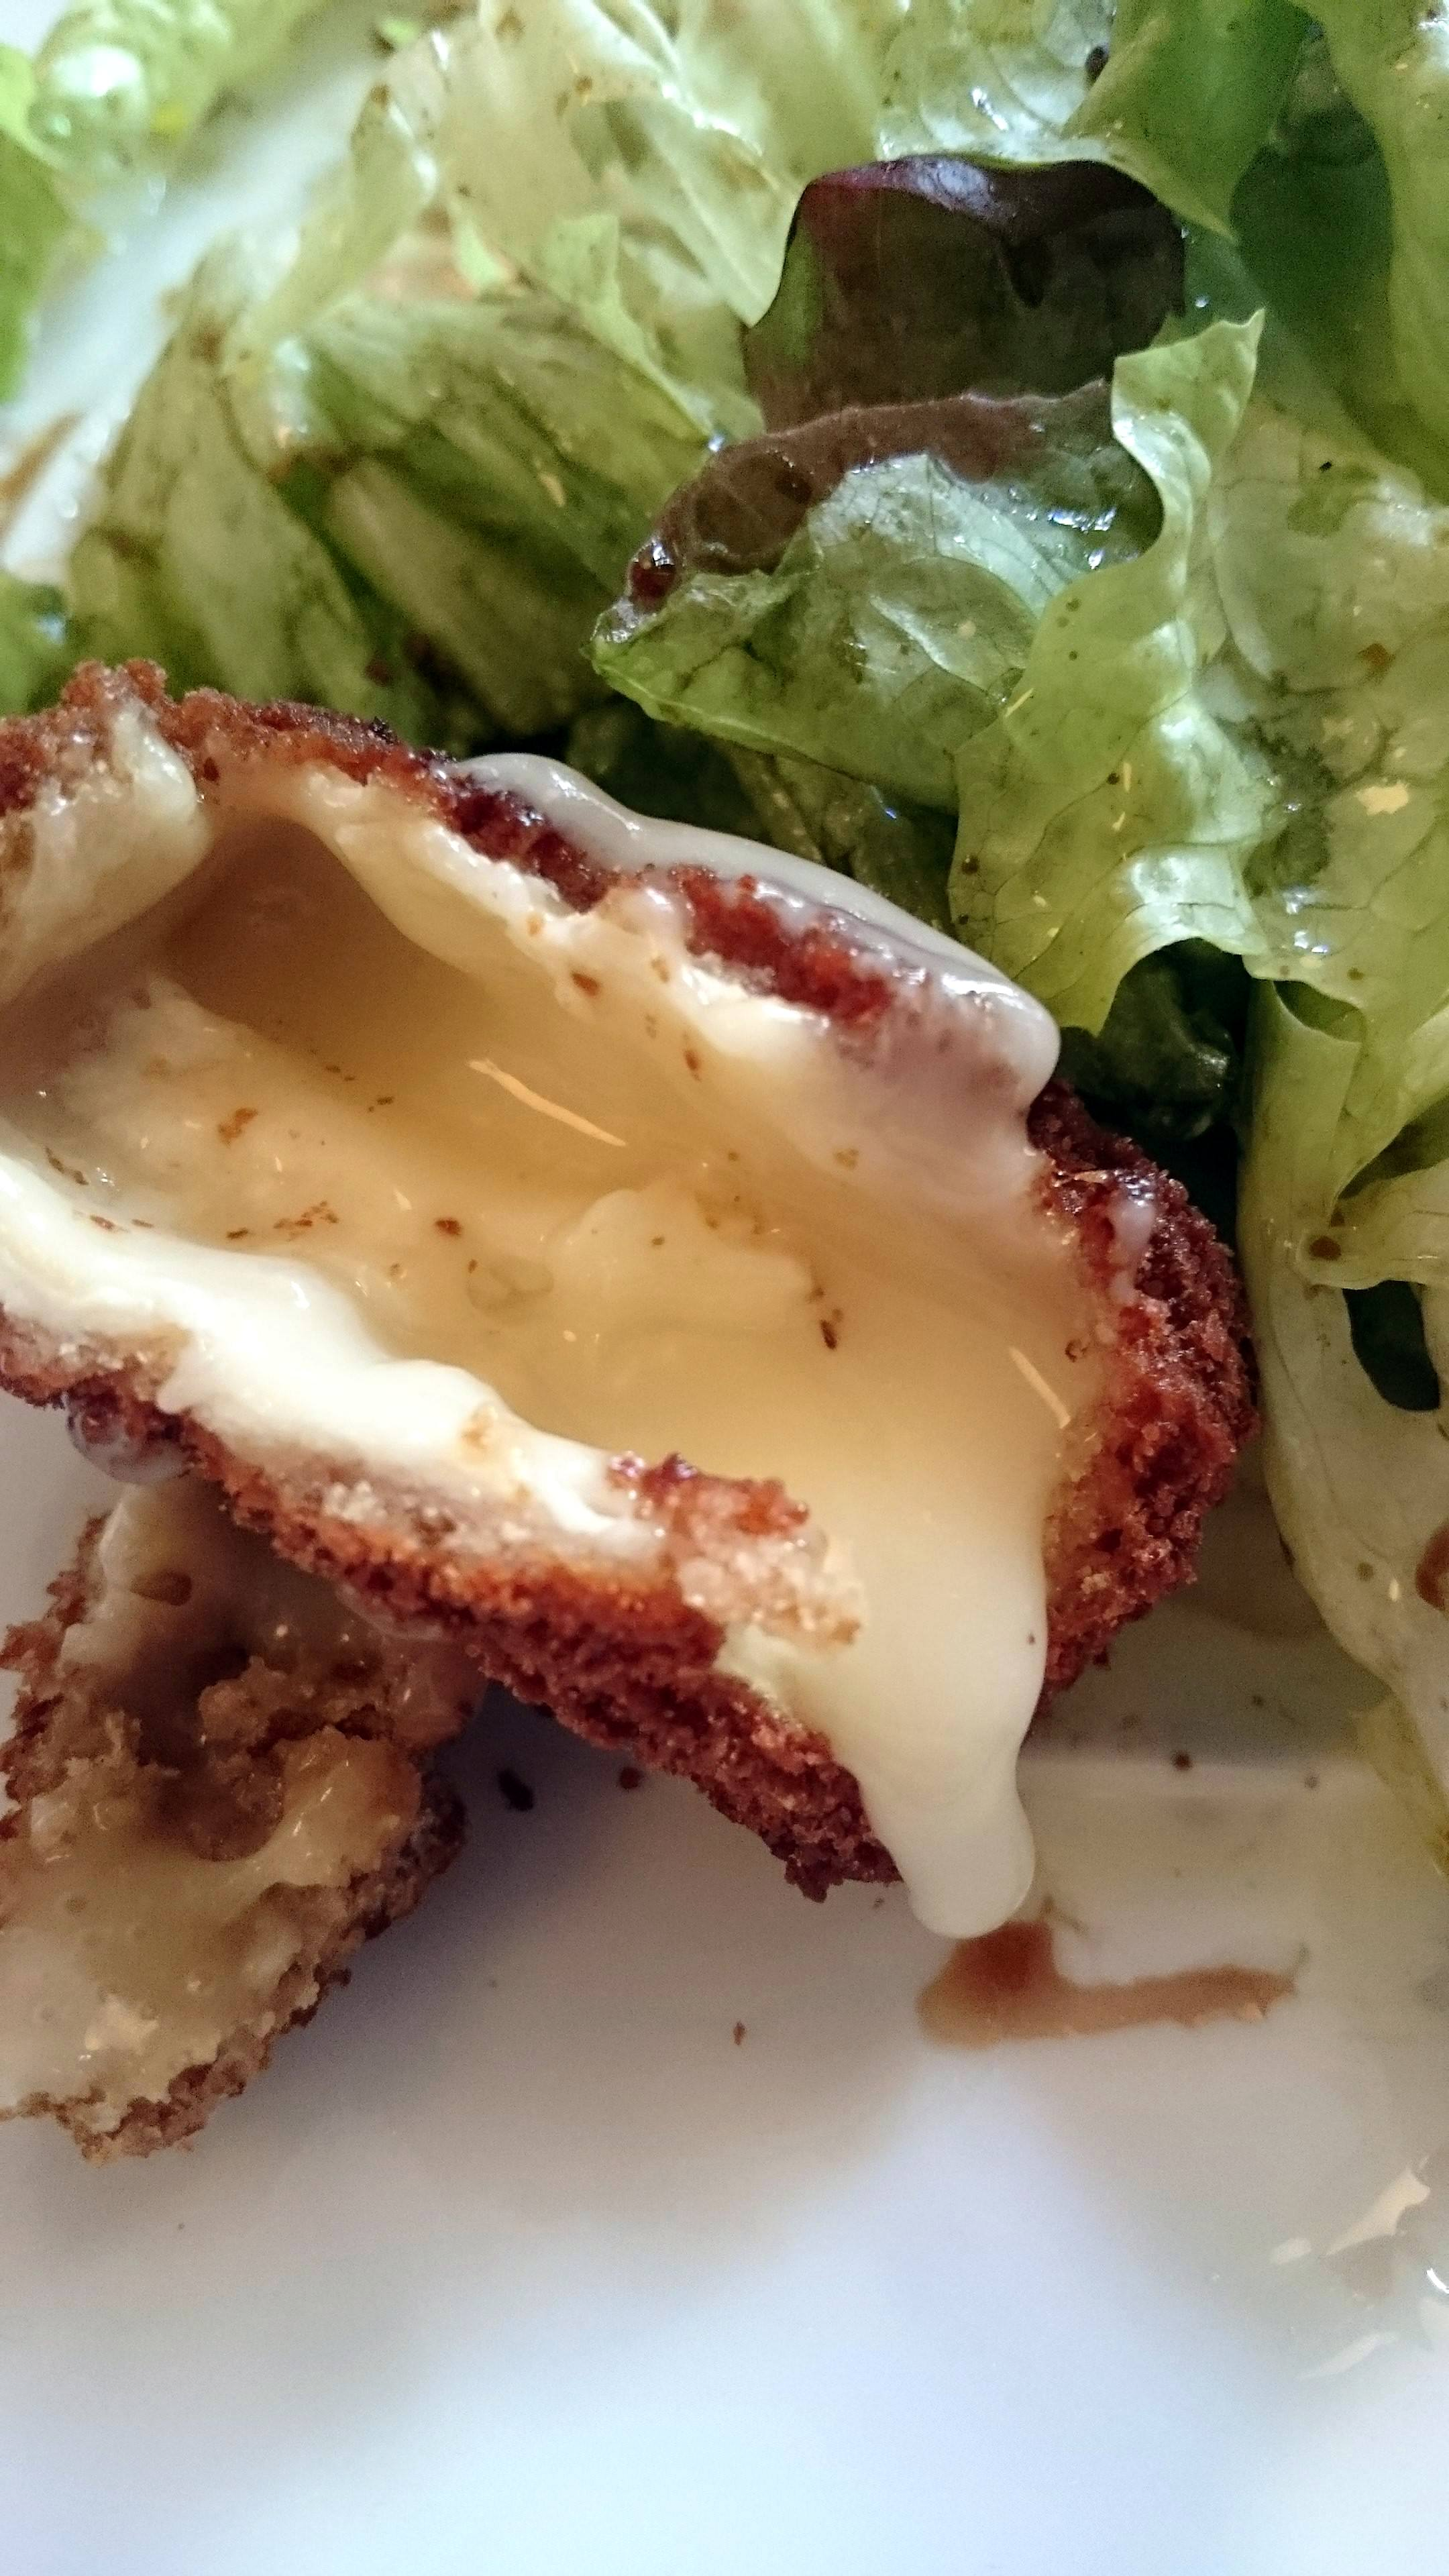 Fried camembert, after.